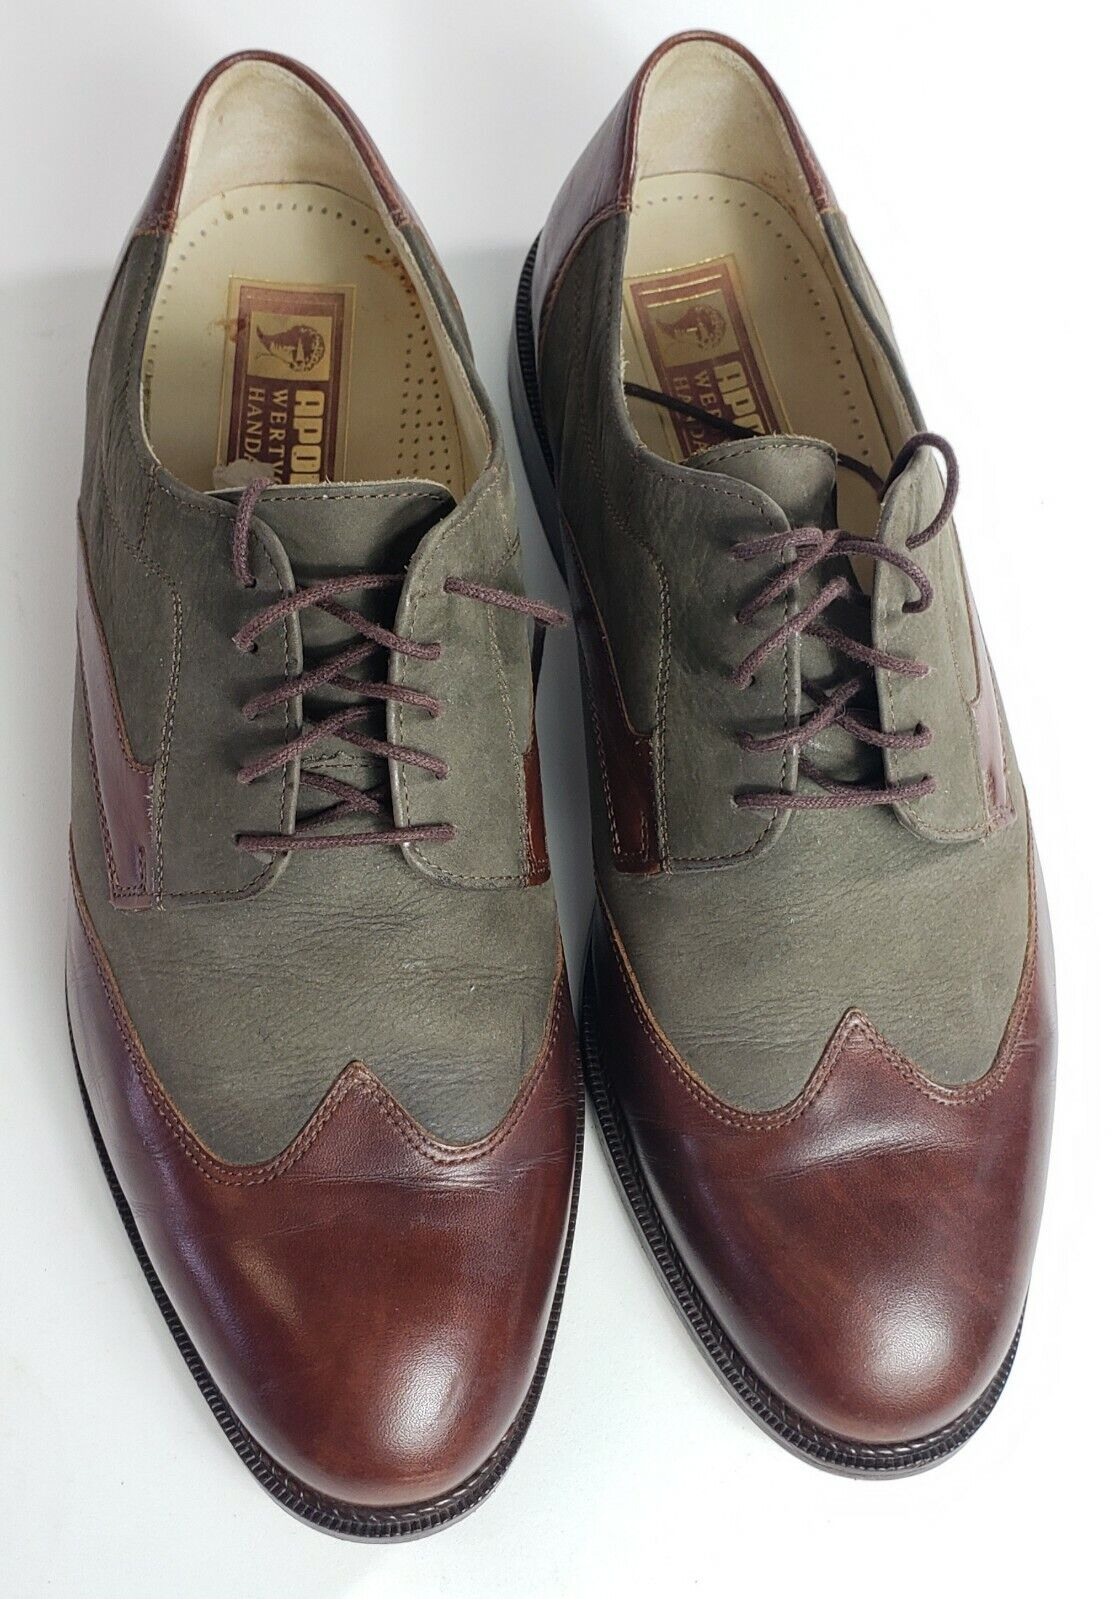 APOLLO WERTVOLLE HANDARBEIT Leather Perforated Brogues Oxford Shoes 10.5